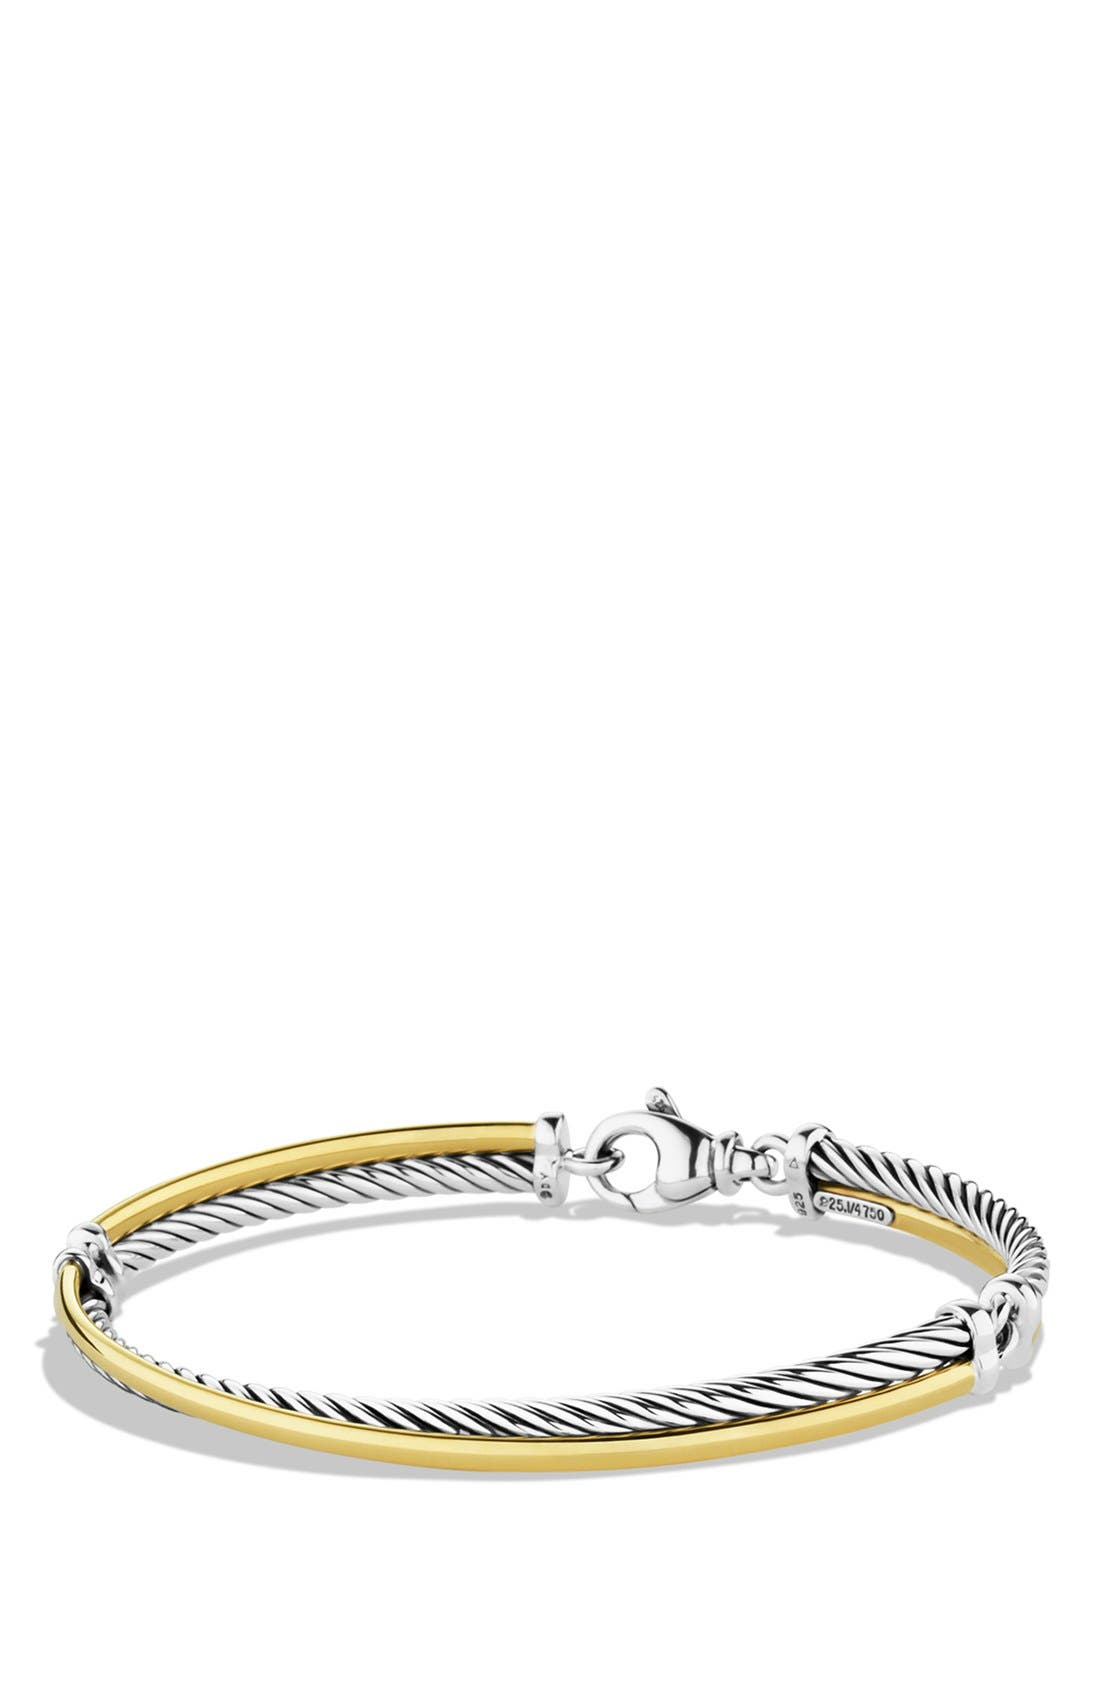 Main Image - David Yurman 'Crossover' Bracelet with Gold